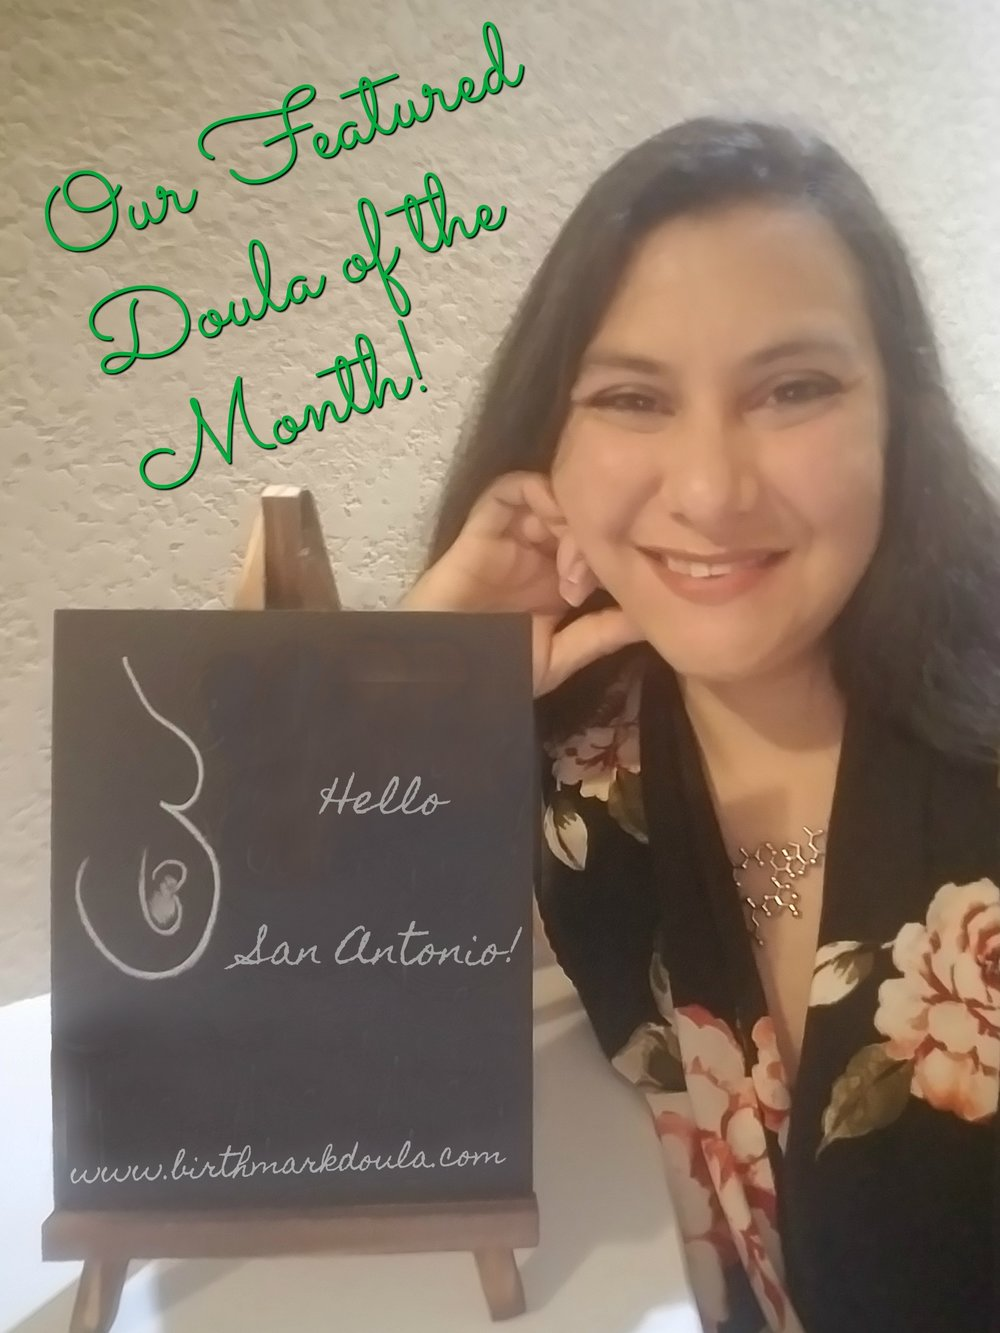 oUR FEATURED DOULA OF THE MONTH!